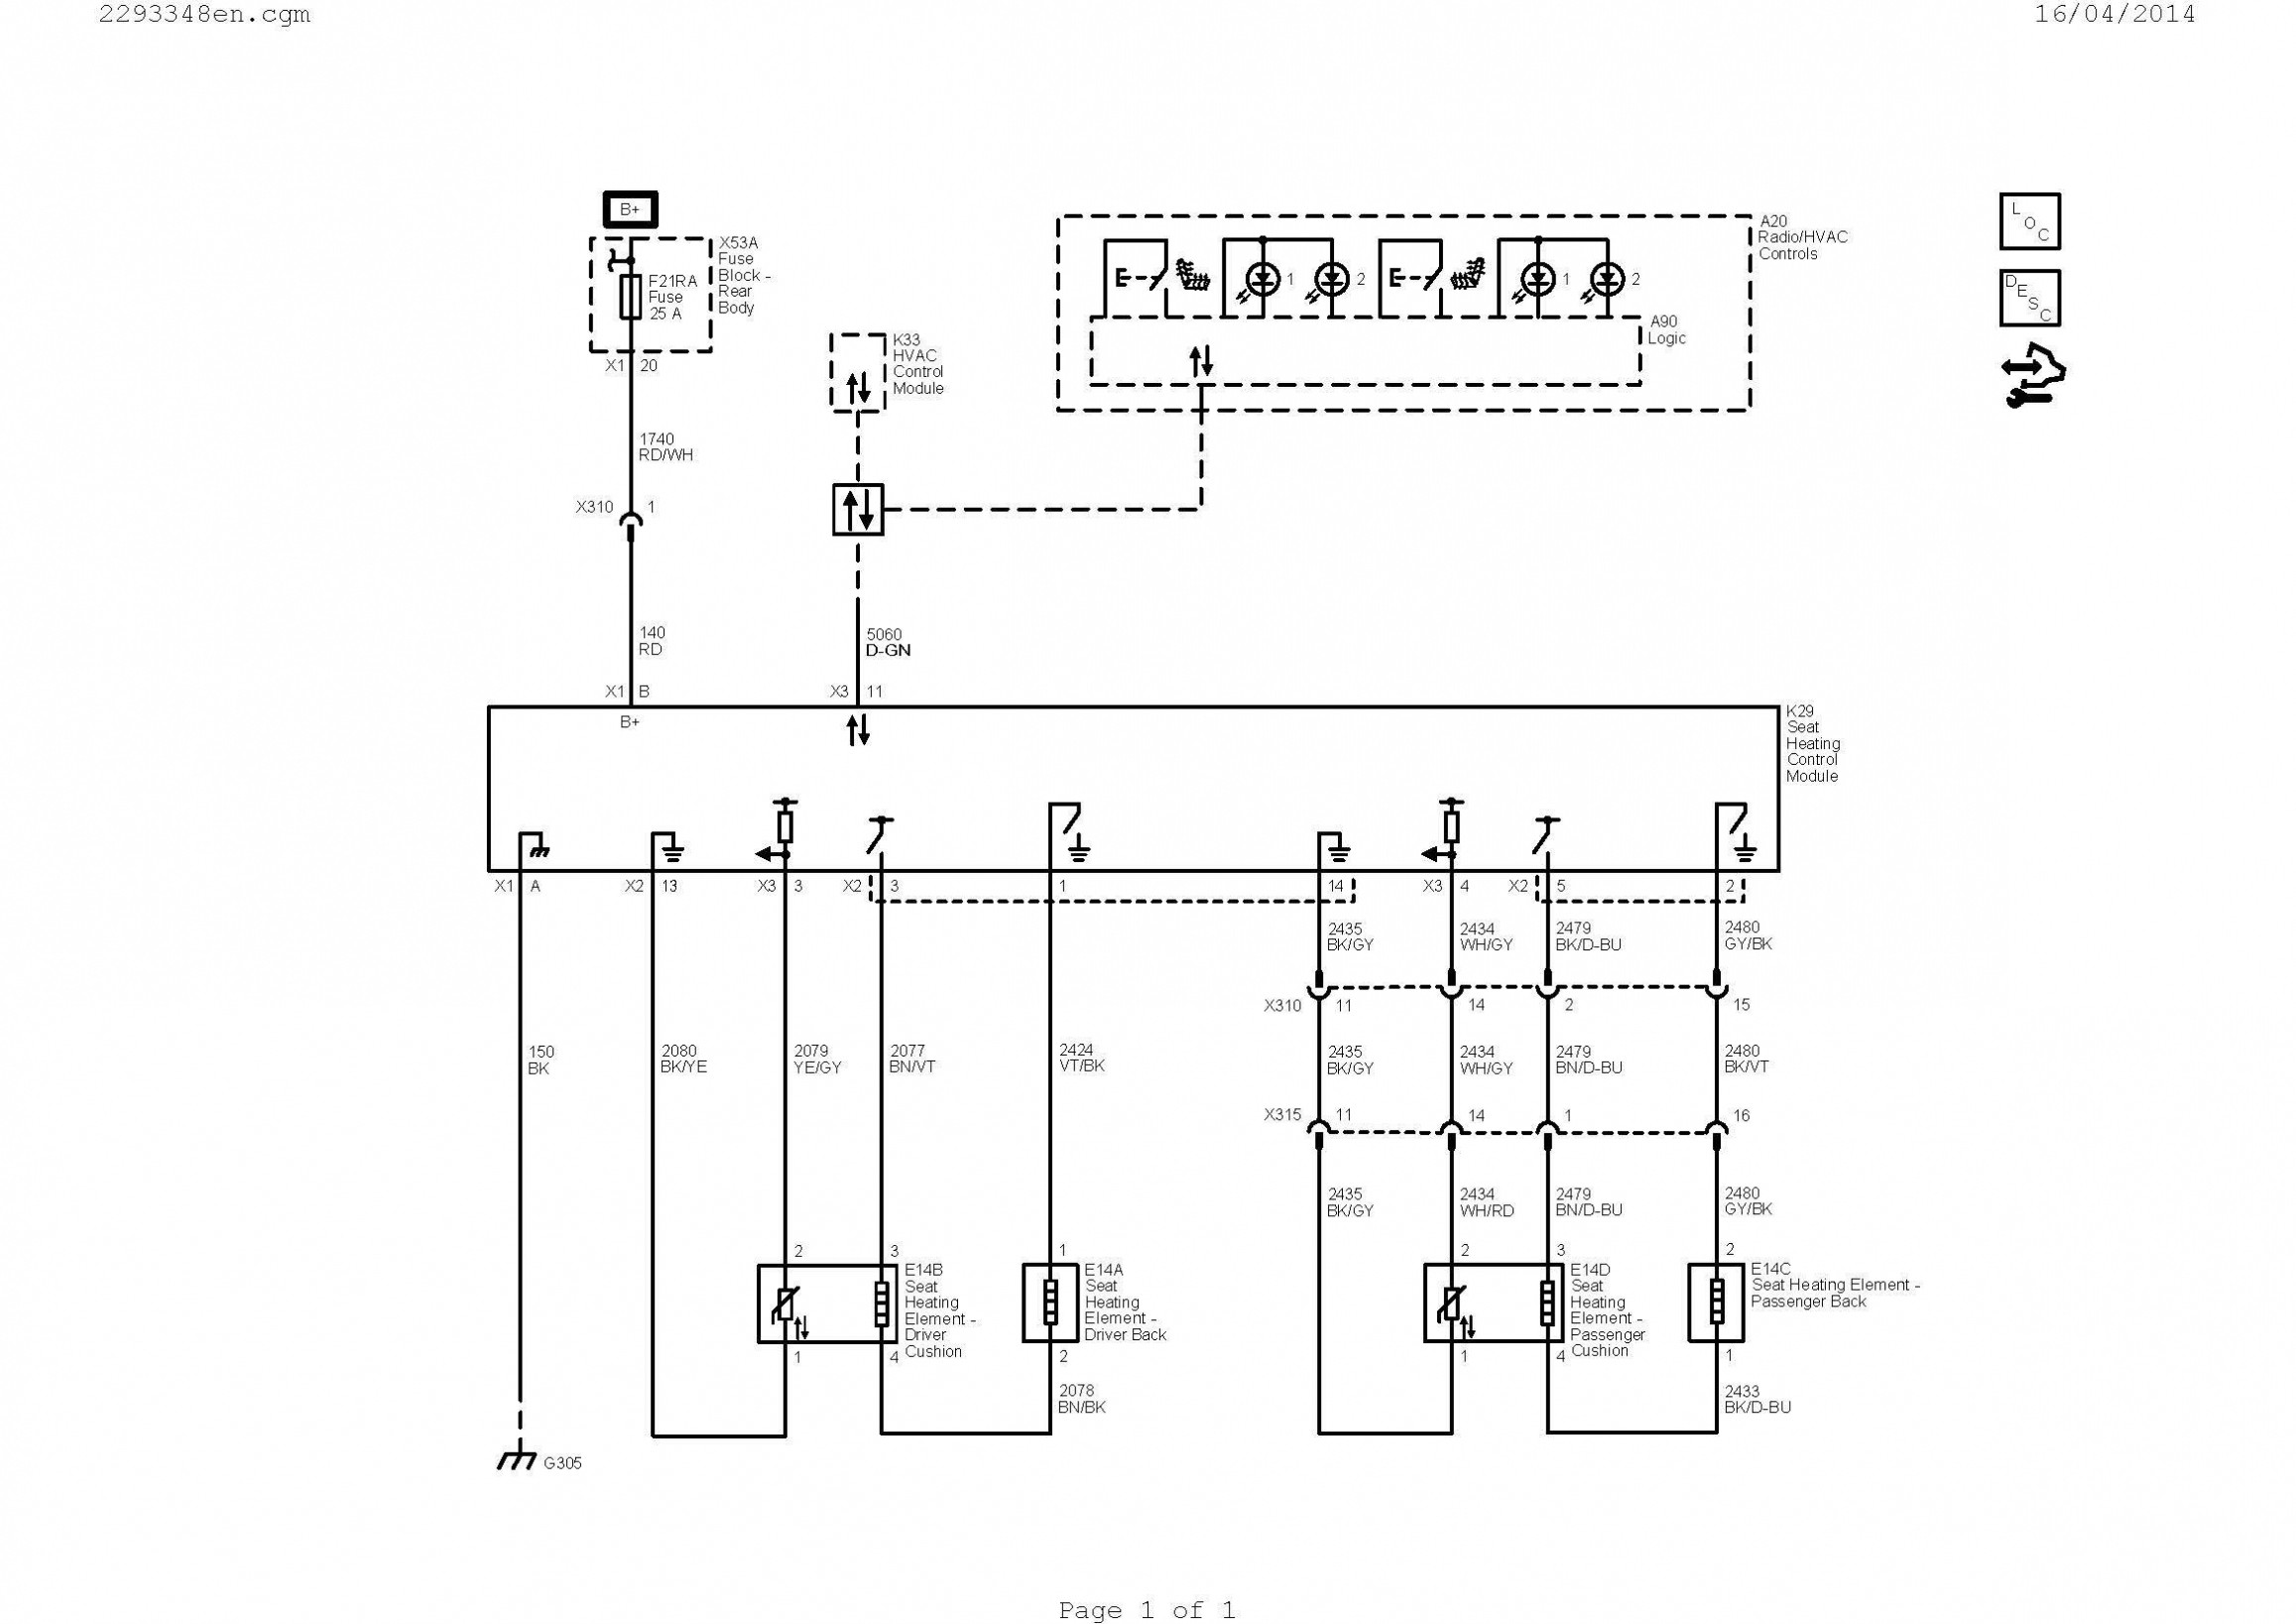 Wiring Diagram Website Best Ac Tech Wiring Diagram New Diagram Websites  Unique Hvac Diagram 0d